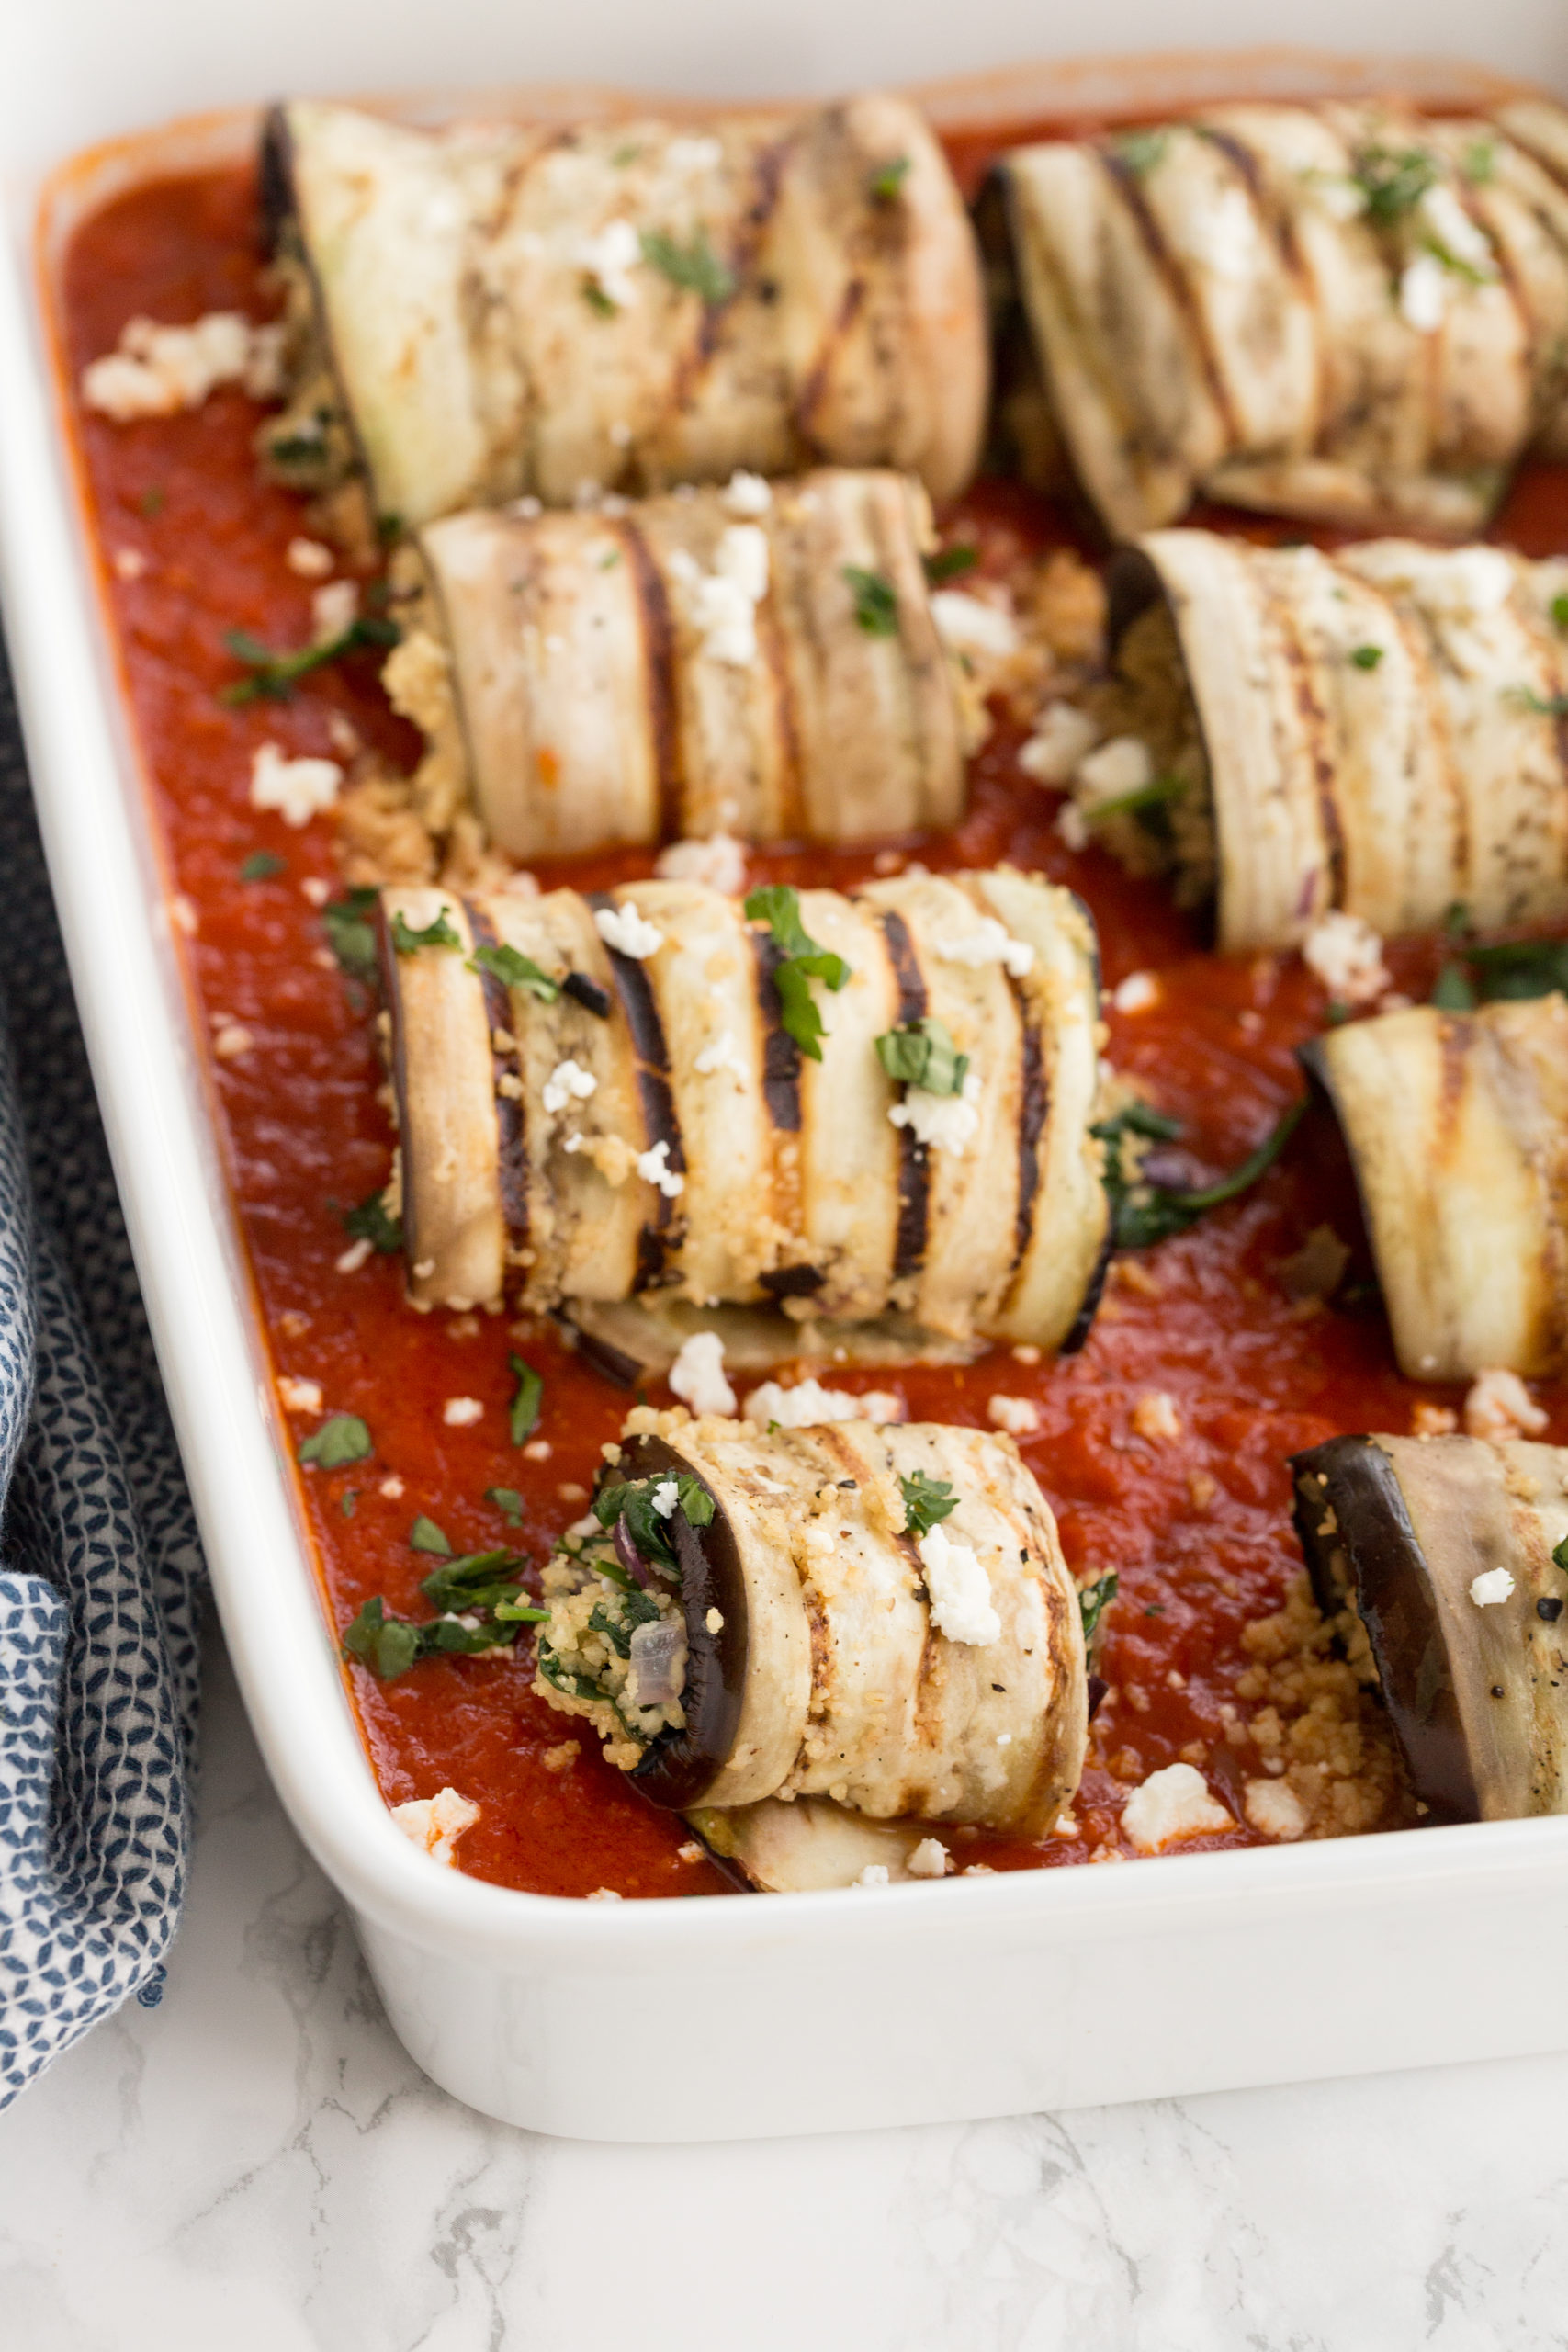 Mediterranean Eggplant and Couscous Roll Ups with Feta